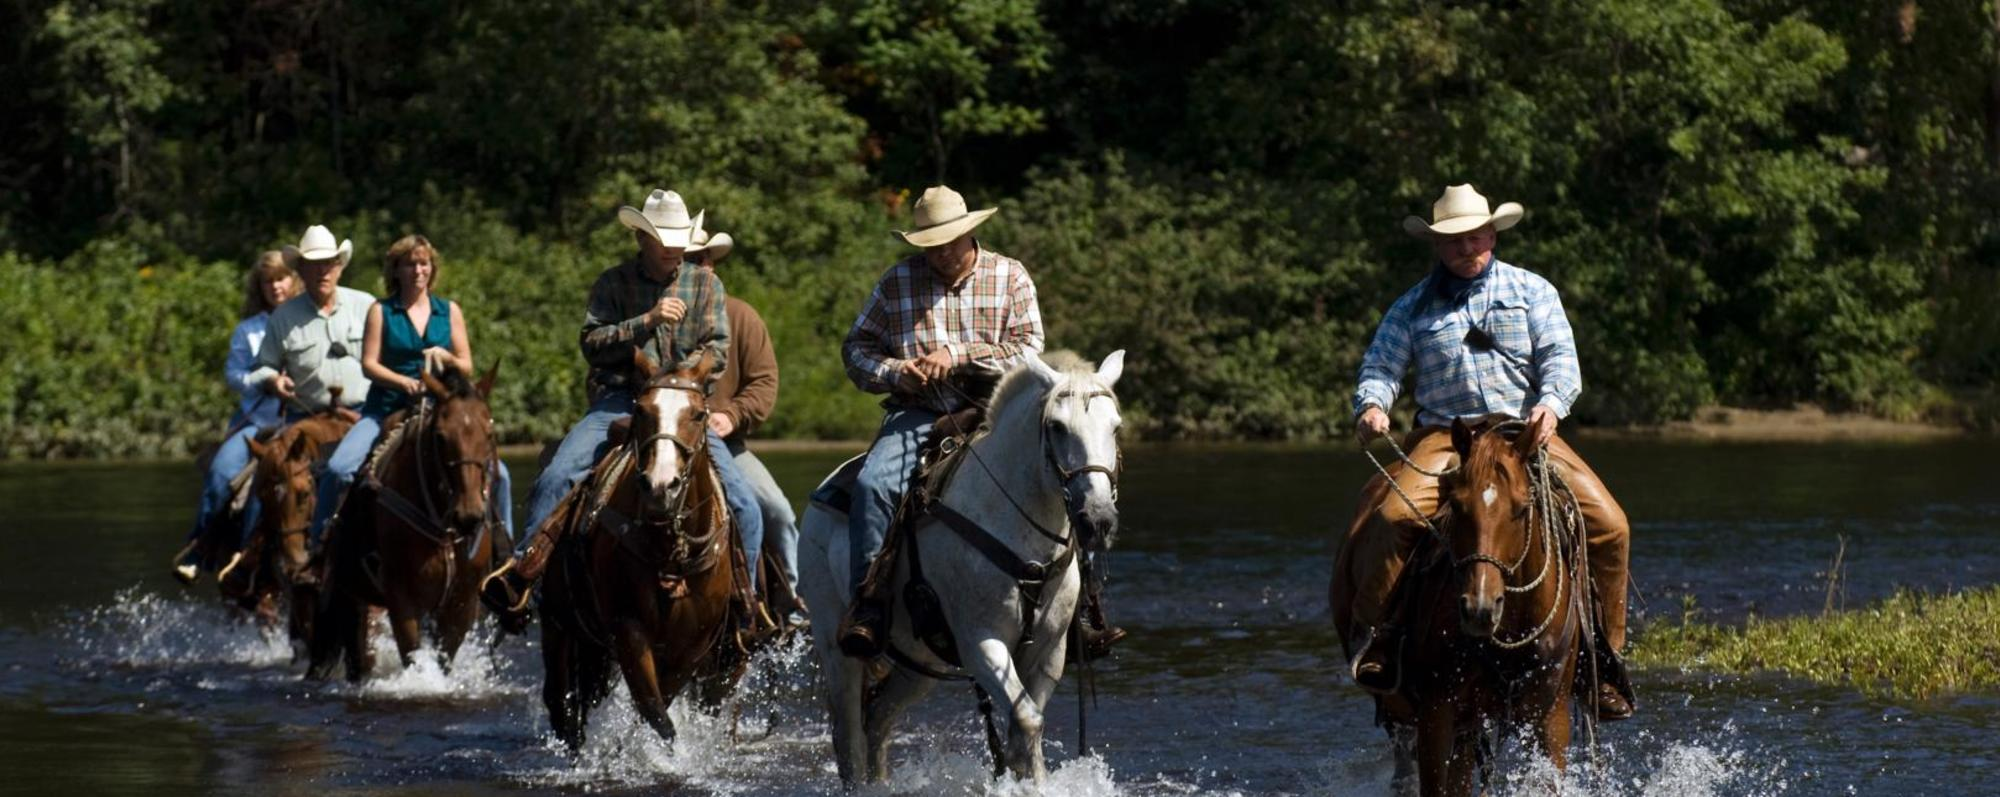 Trail ride through pond at 1000 Acres Ranch (formerly Stony Creek Ranch Resort)